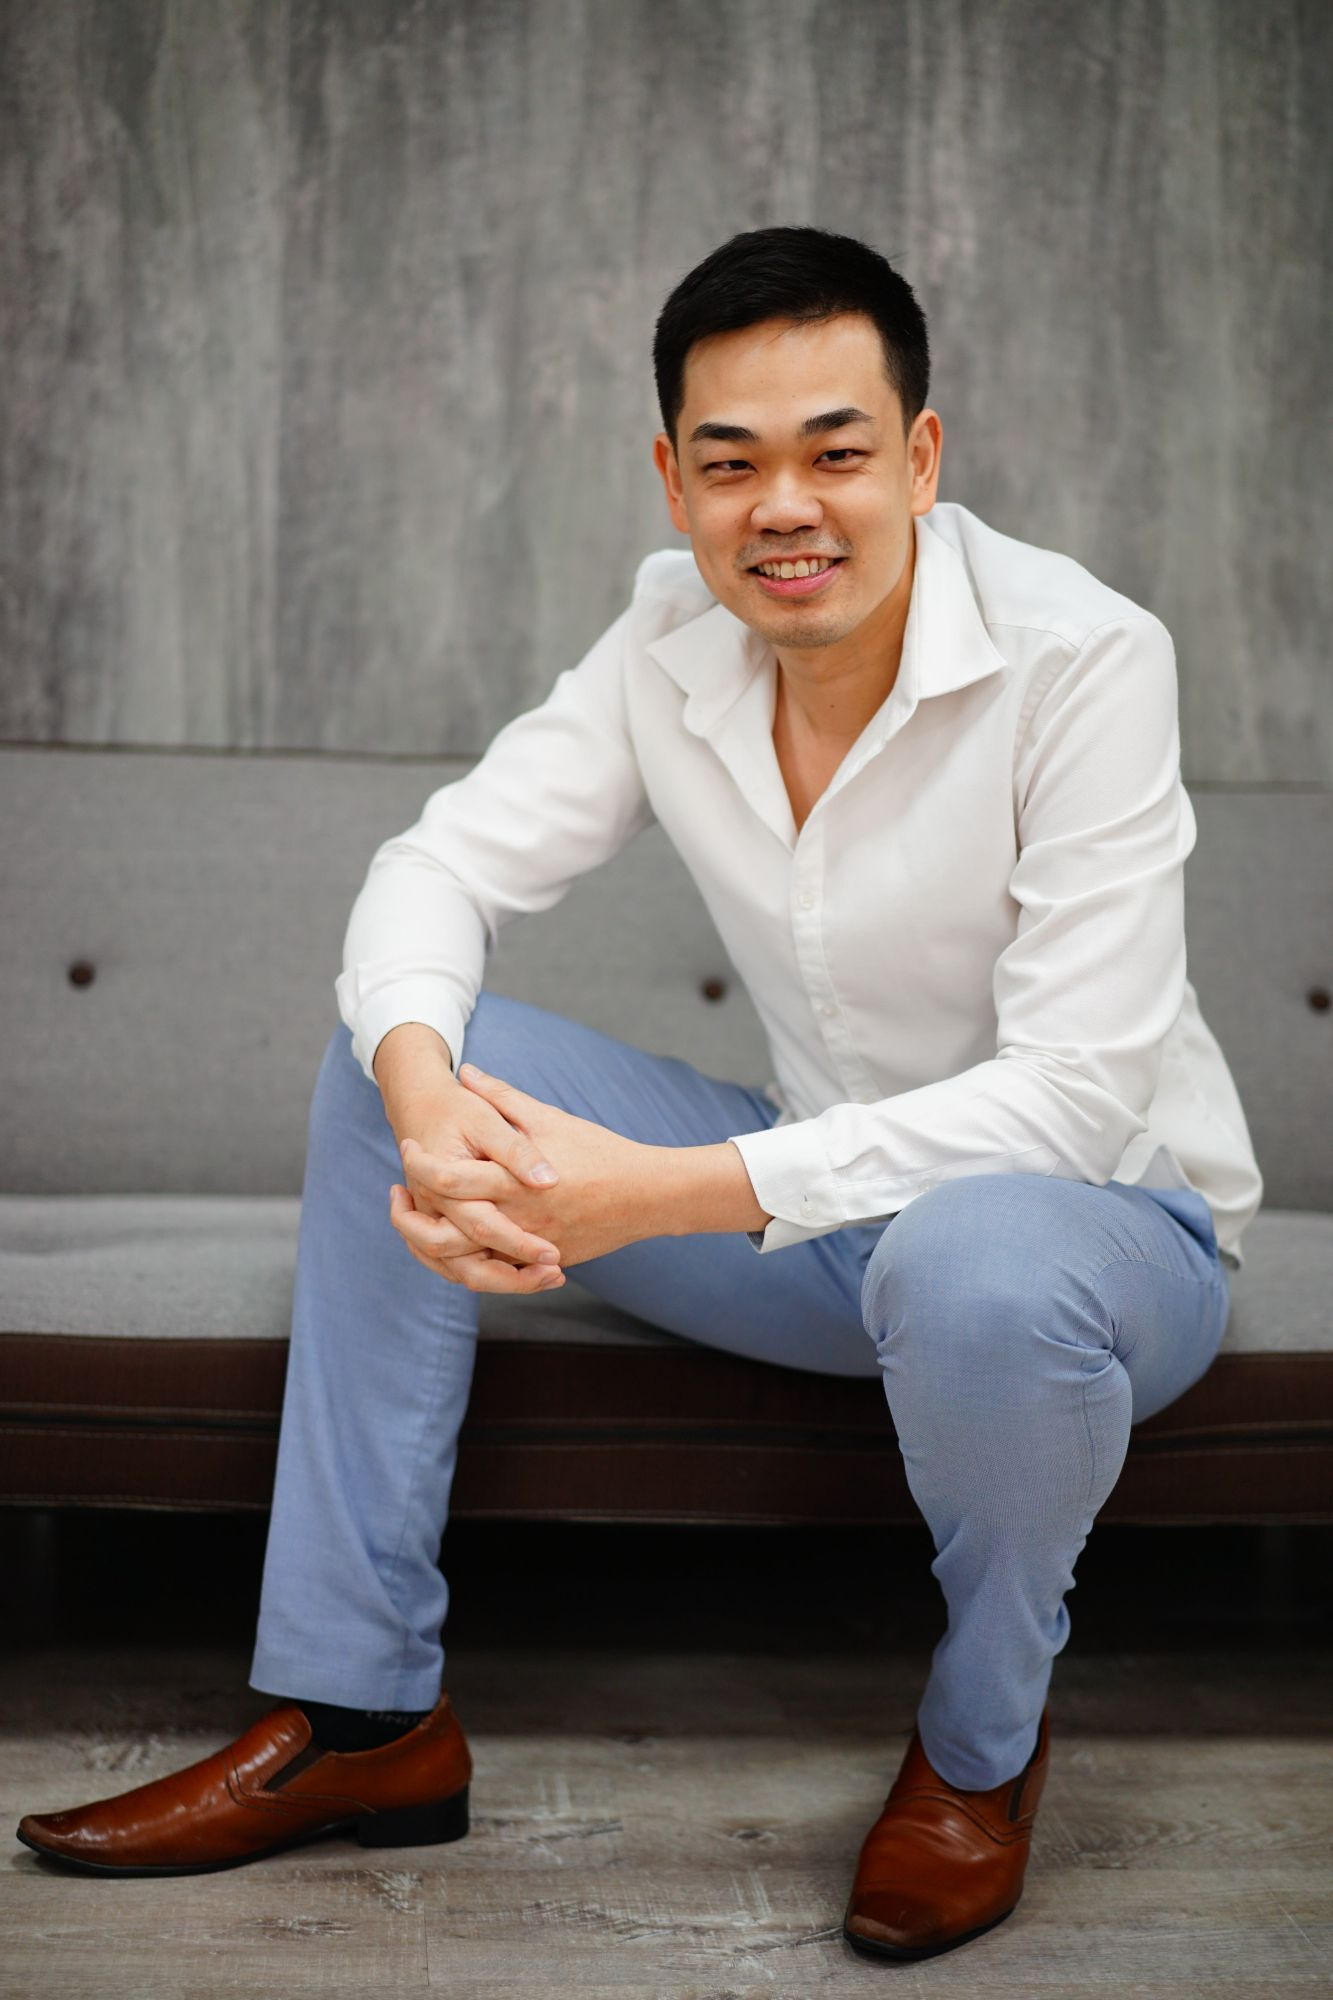 Carro's Aaron Tan On Becoming An Entrepreneur At 13 And Founding One Of Southeast Asia's Largest Online Car Marketplaces